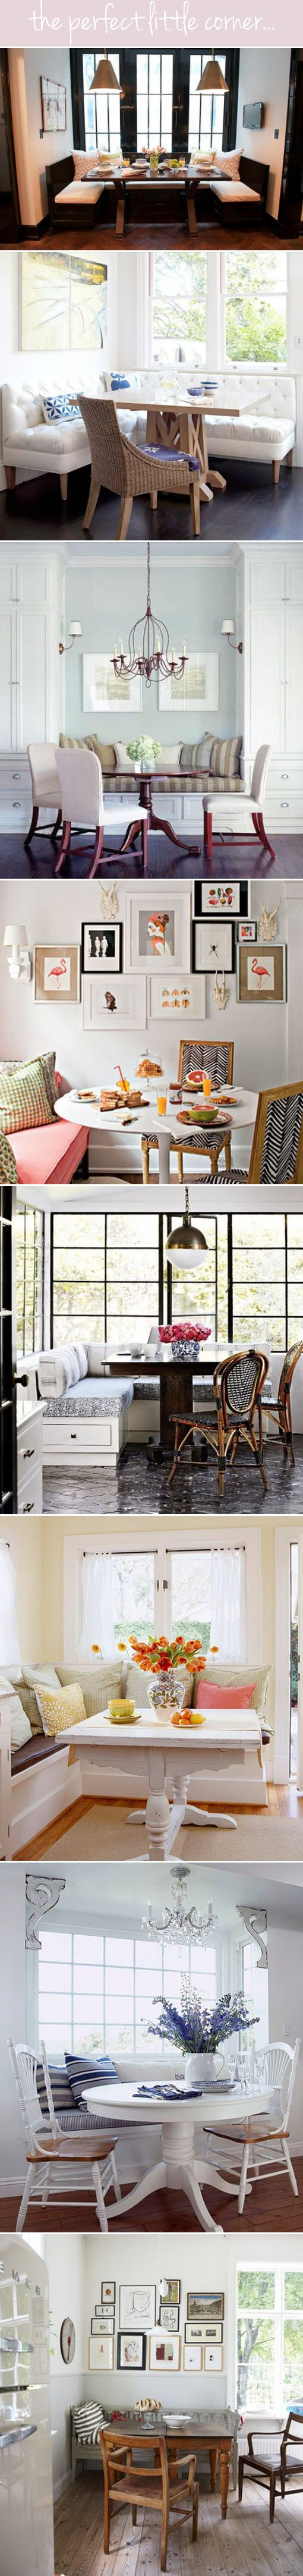 Beautiful Breakfast nooks. Love the zigzag chair one.